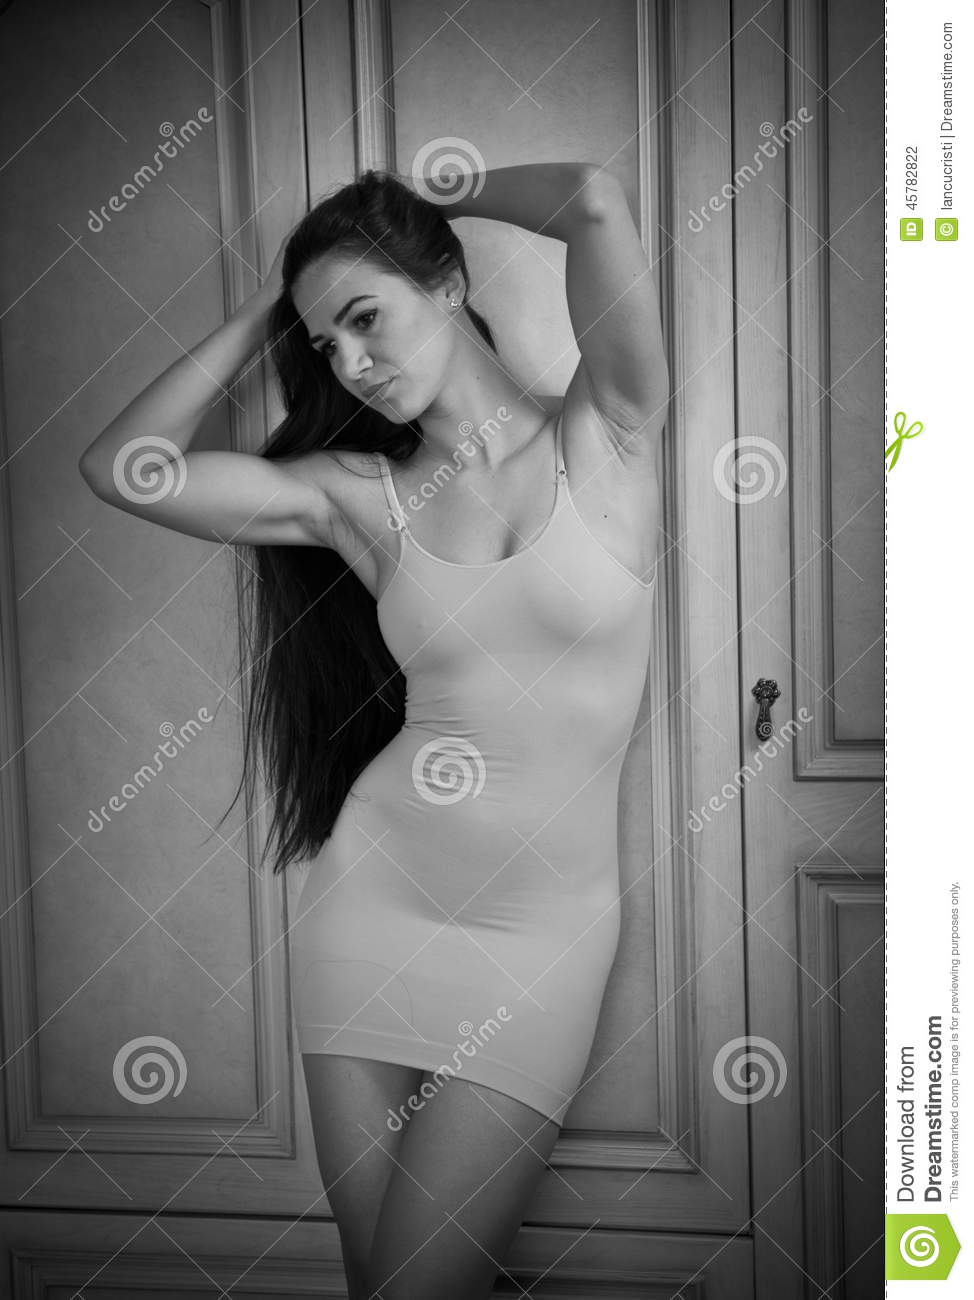 Just came vintage young woman nude